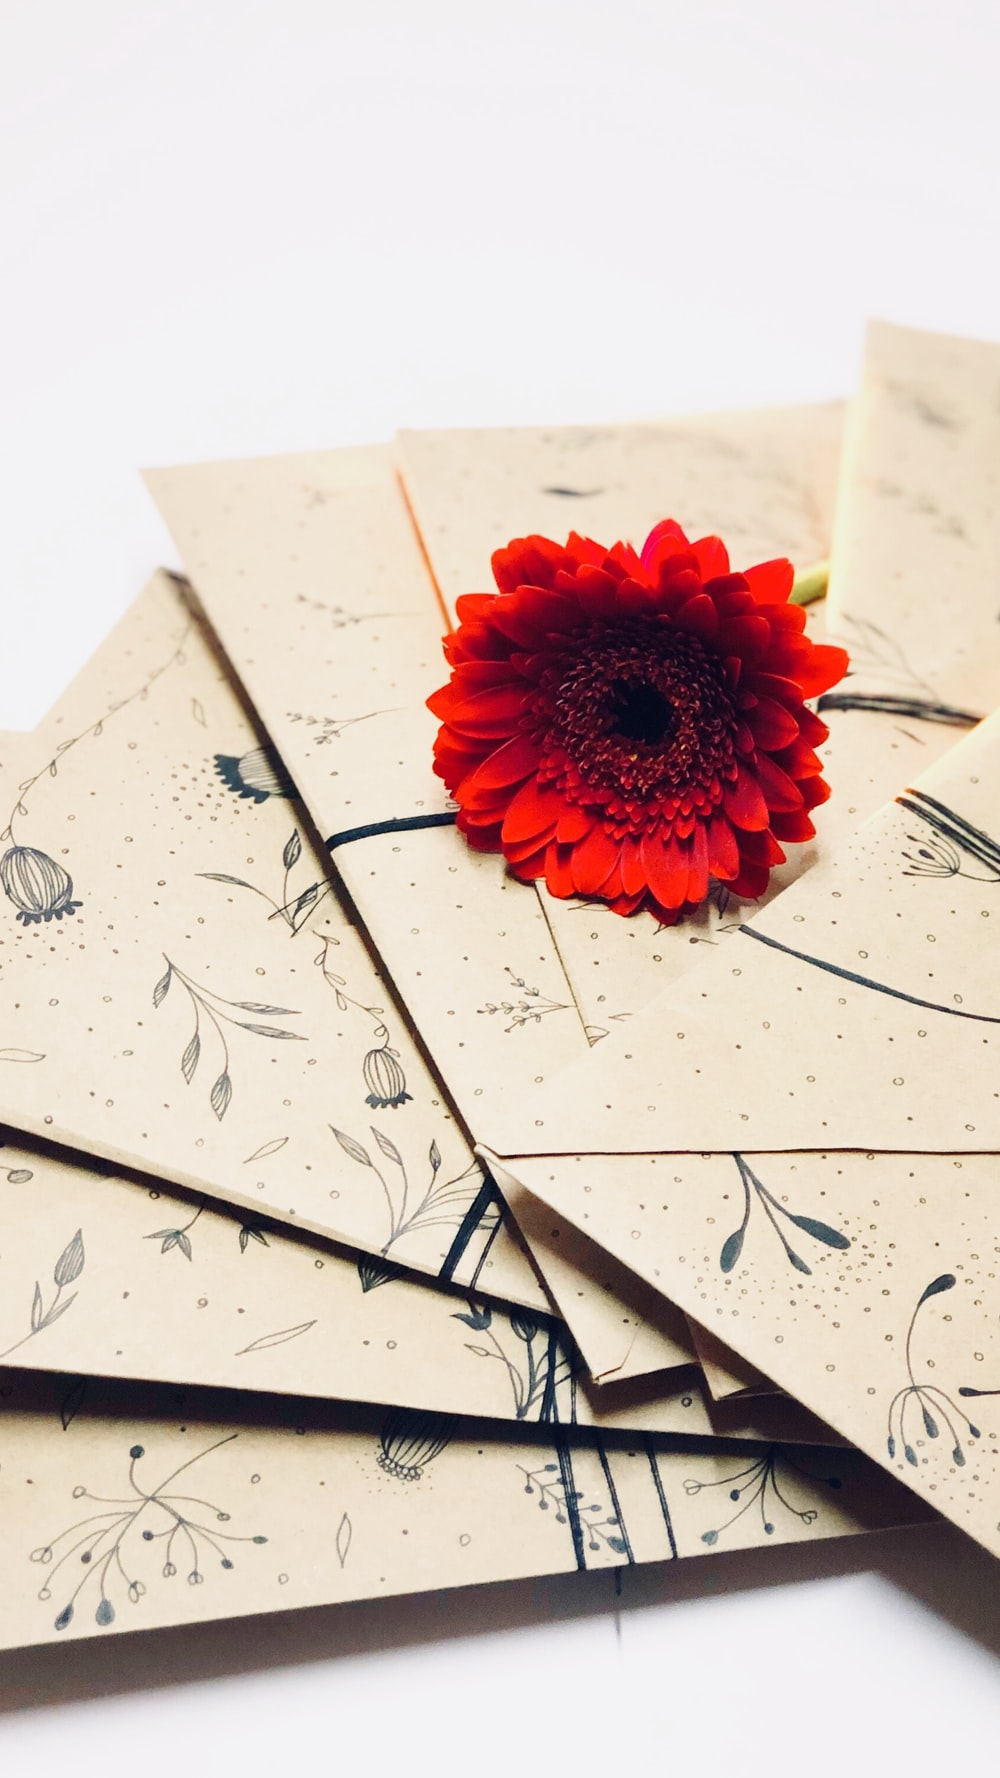 red gerbera daisy on envelope